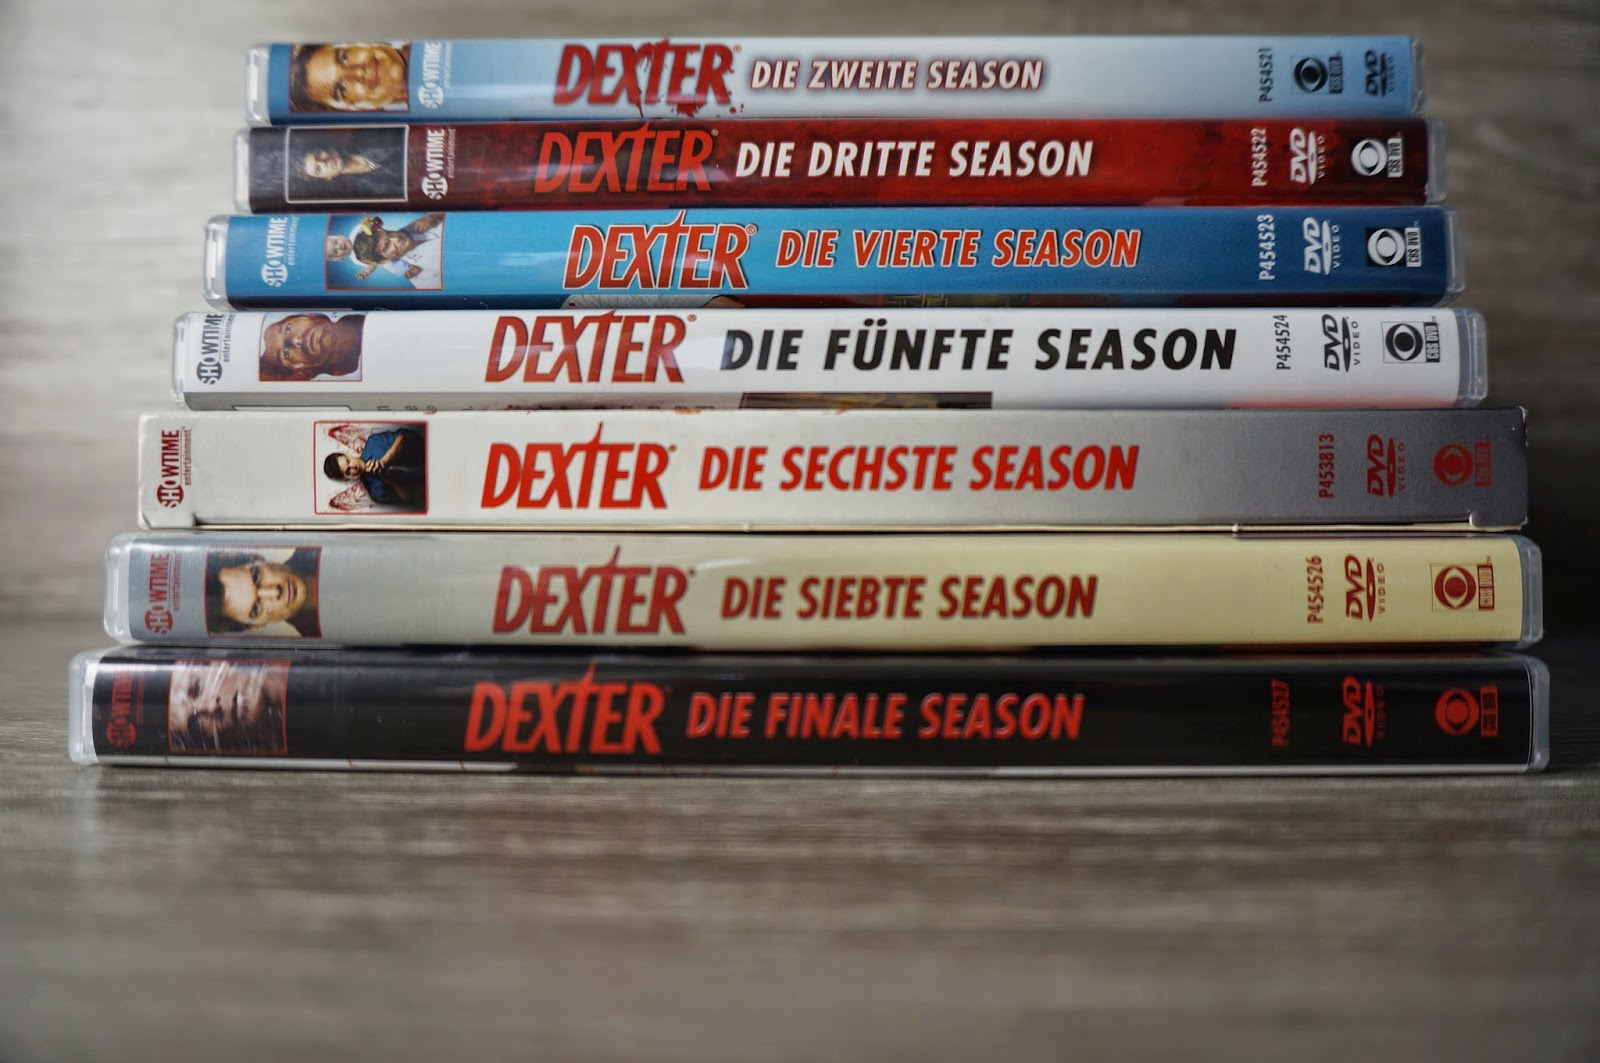 Serie Dexter - Season 1-8 Blogparade